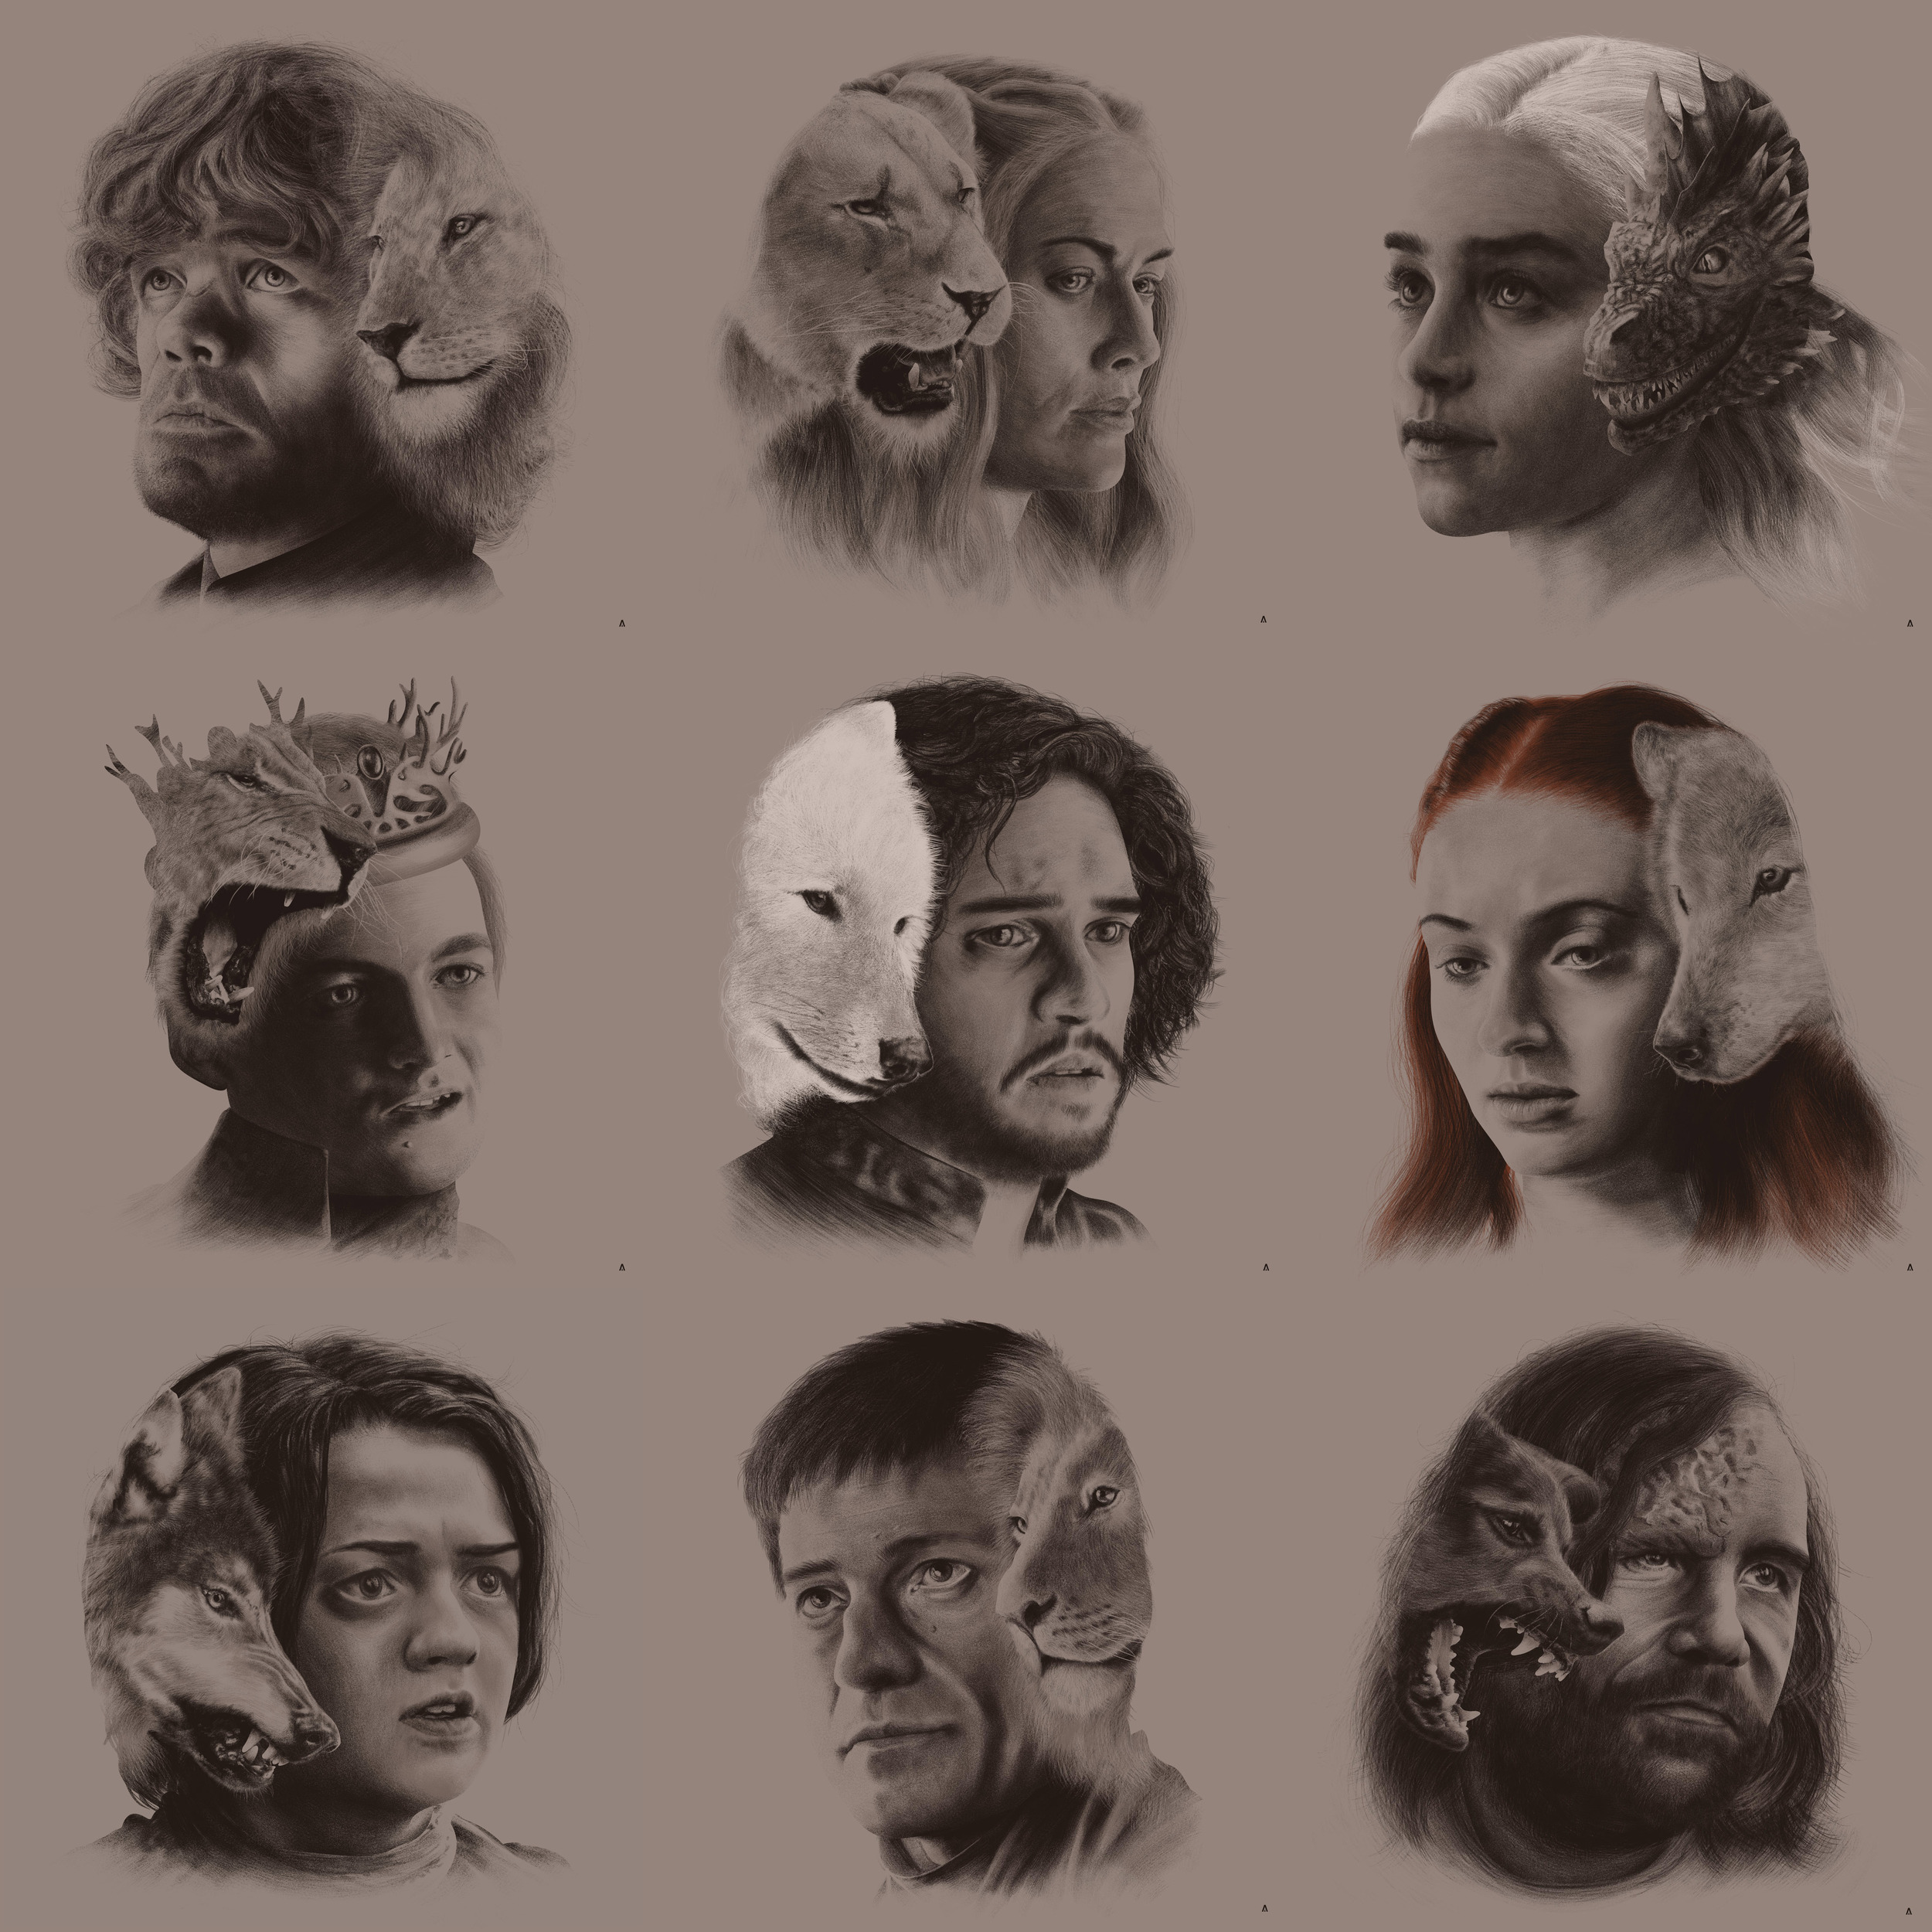 Game of Thrones - Portraits  Regular Portraits or House Sigil Versions Editions of 50ea Giclee $30USD ea